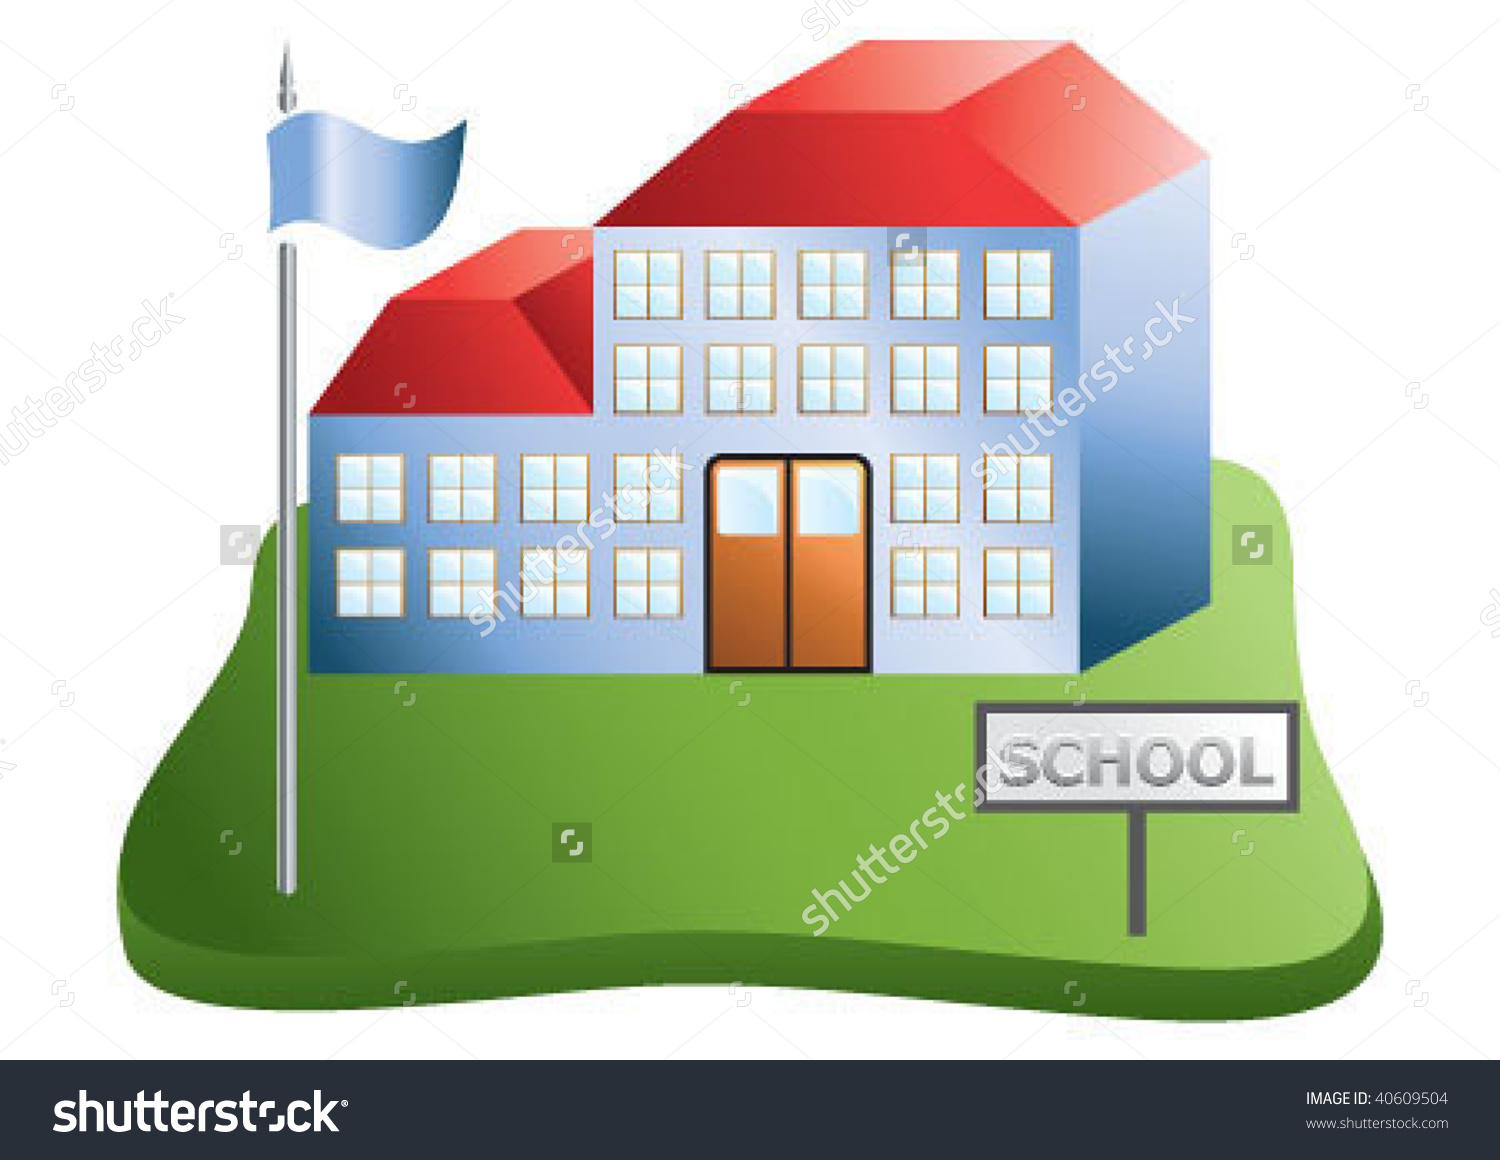 School Building On Green Area Stock Vector 40609504.